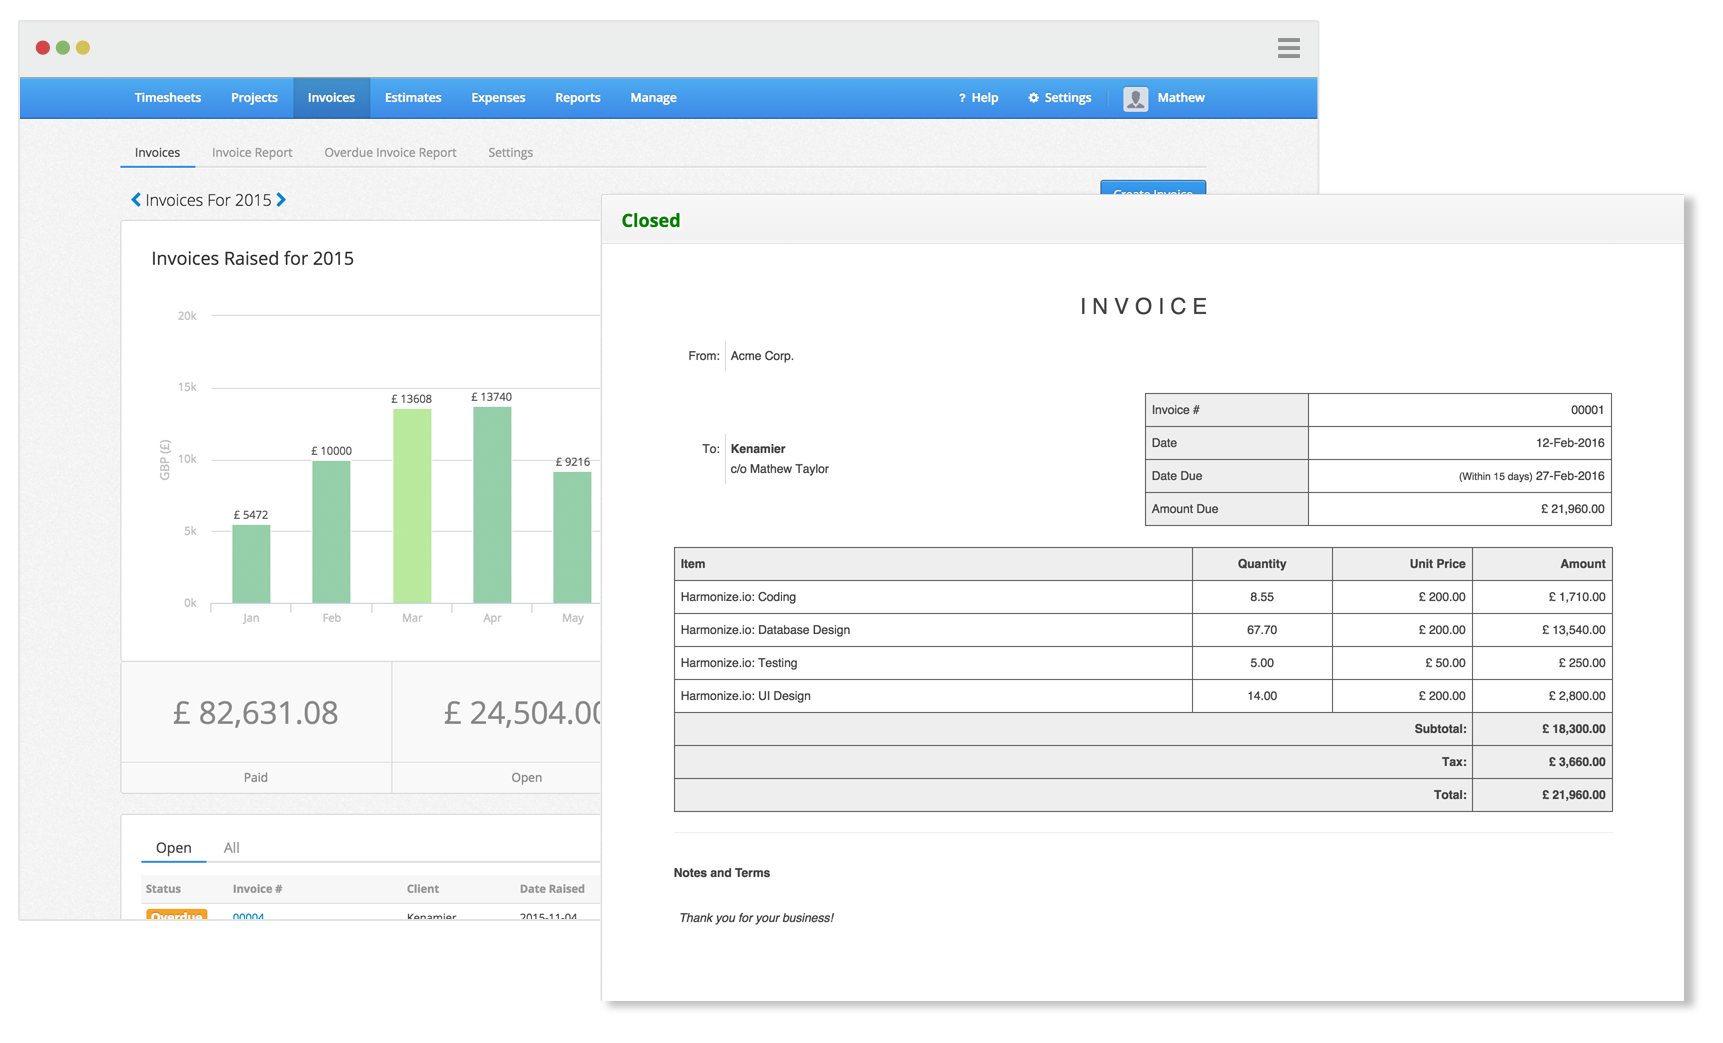 Online Time Tracking Software Invoicing App For Online Billing - Invoice creator app